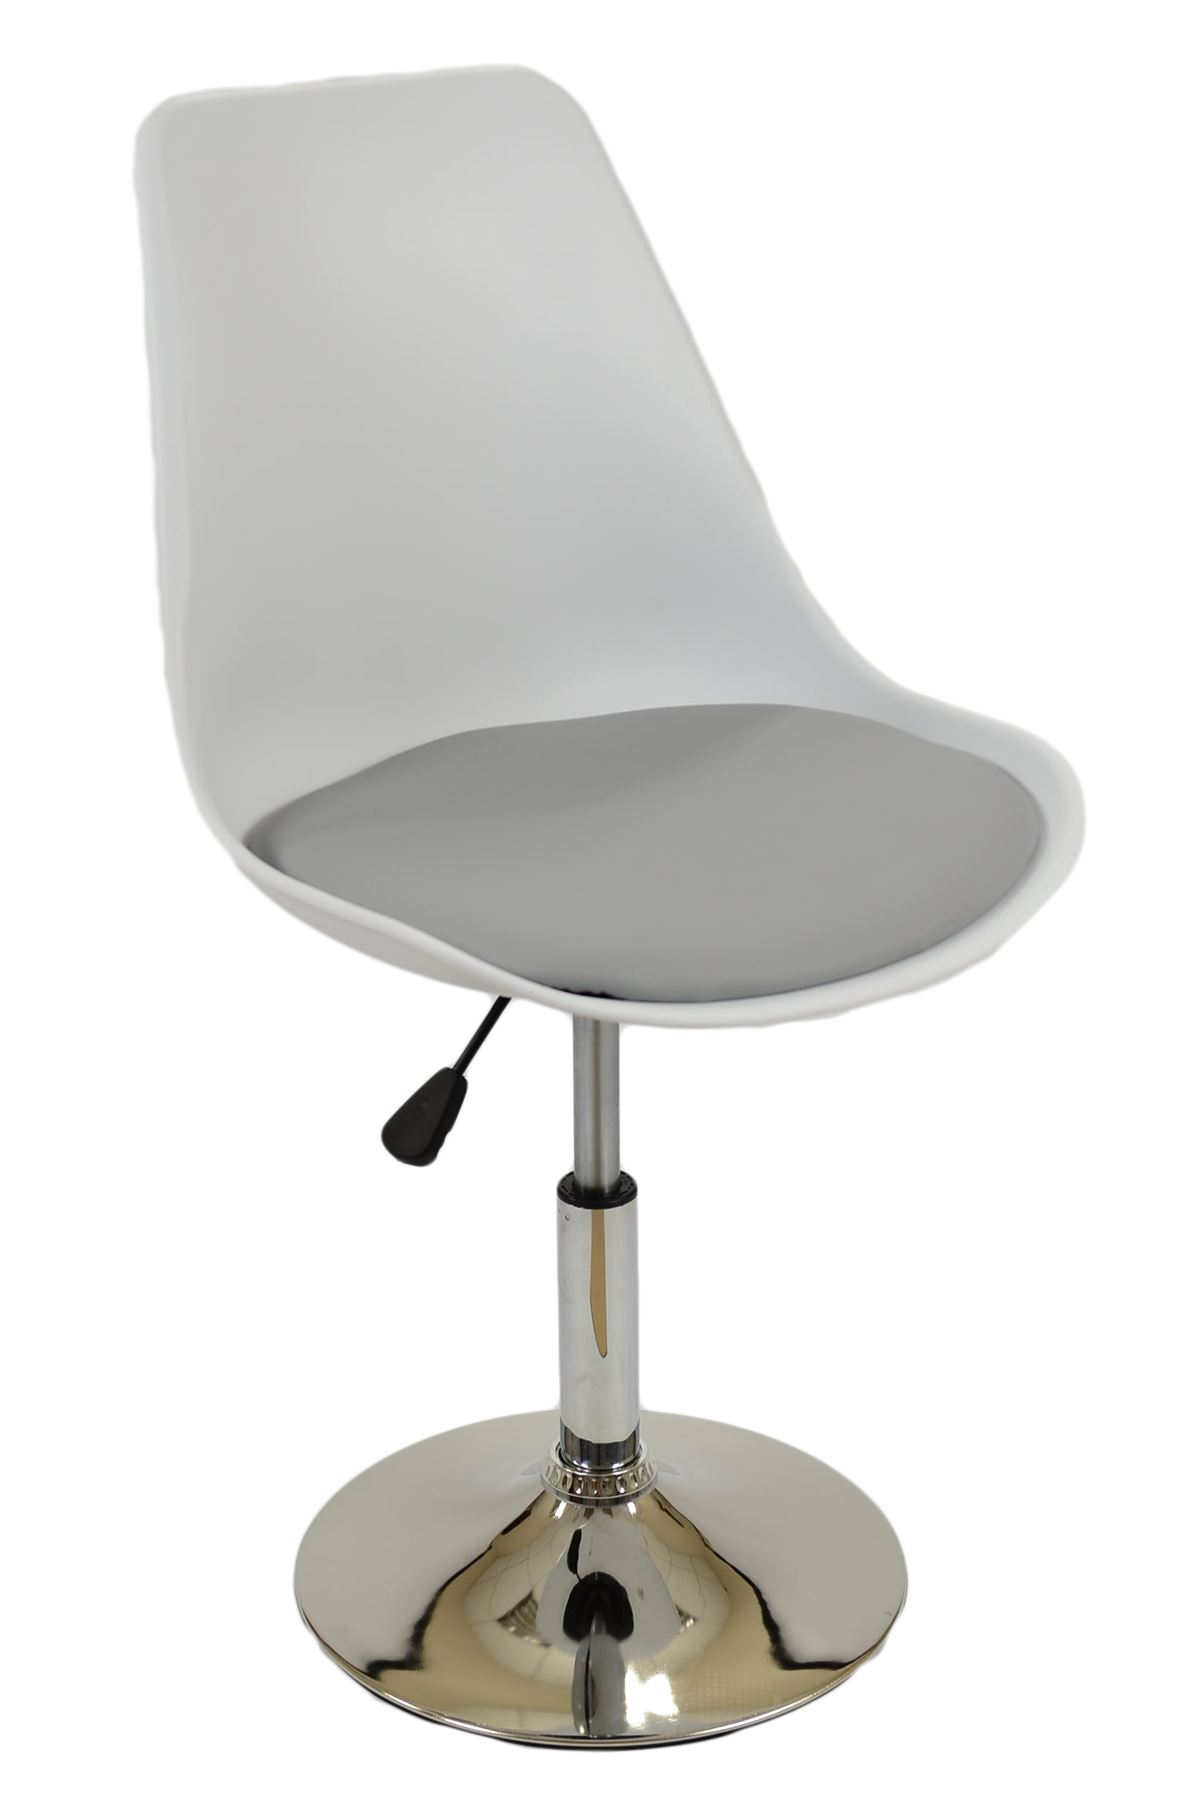 Tulip Plastic Swivel Gas lift fice or Dining Chairs